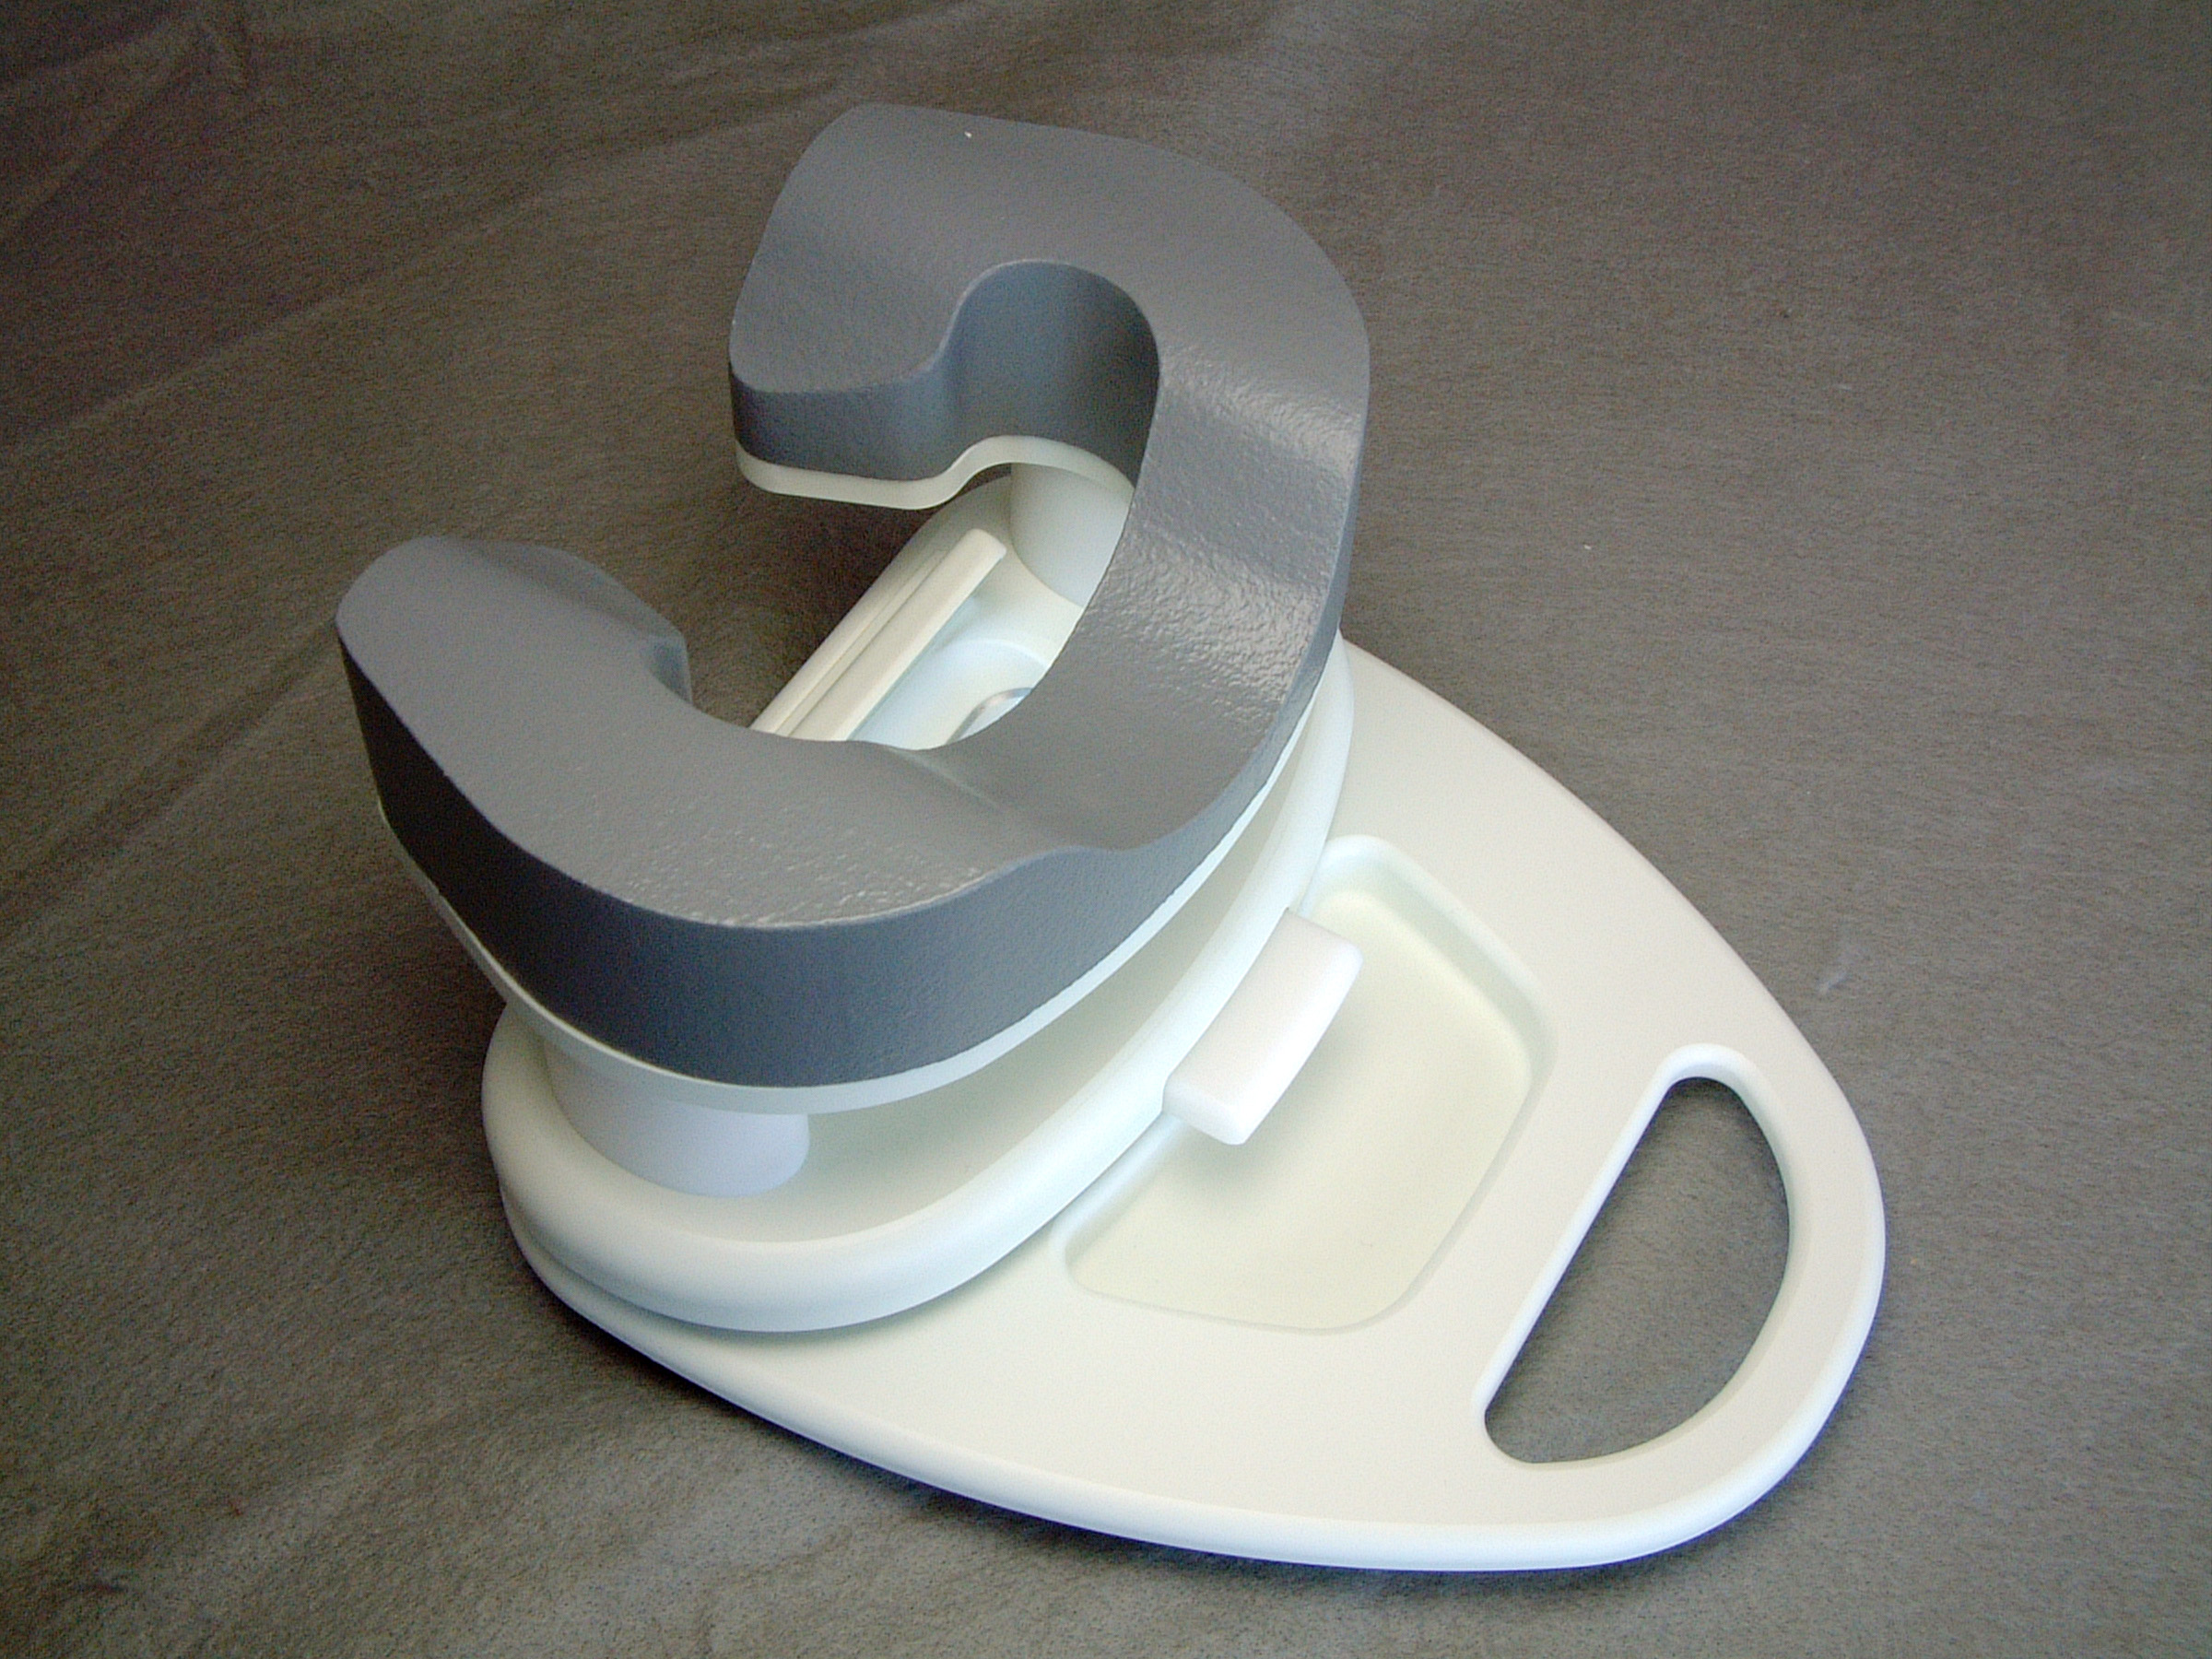 Adjustable Head Rest for 7-Channel Breast Coil